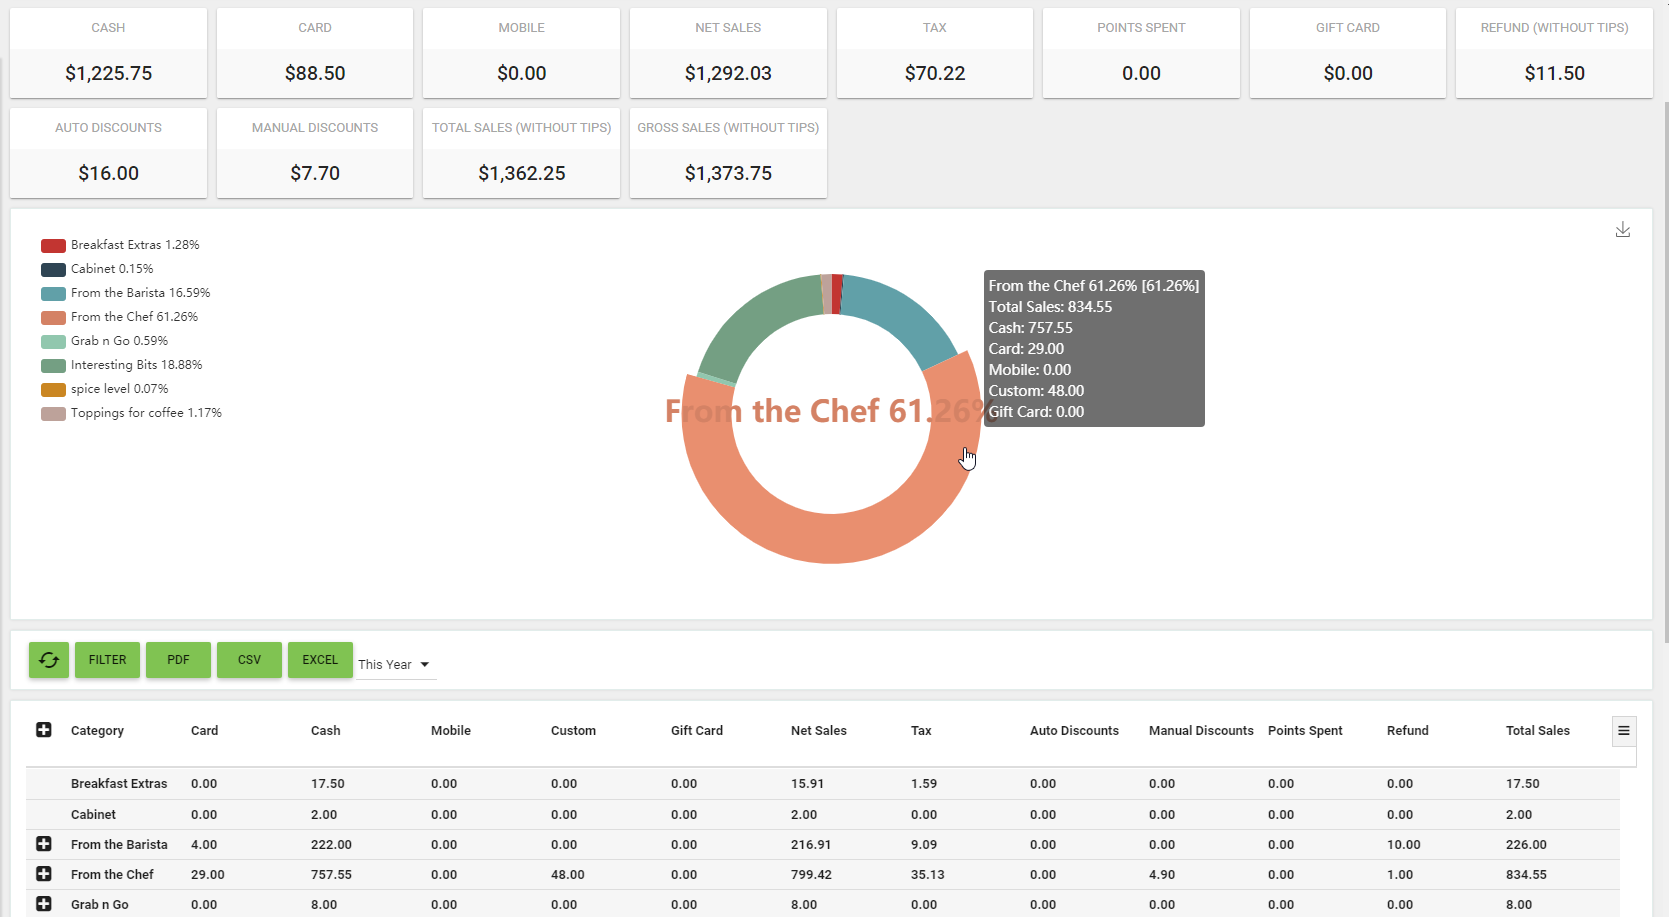 Oscar Point of Sale - BOM - Reports - Sales by Category